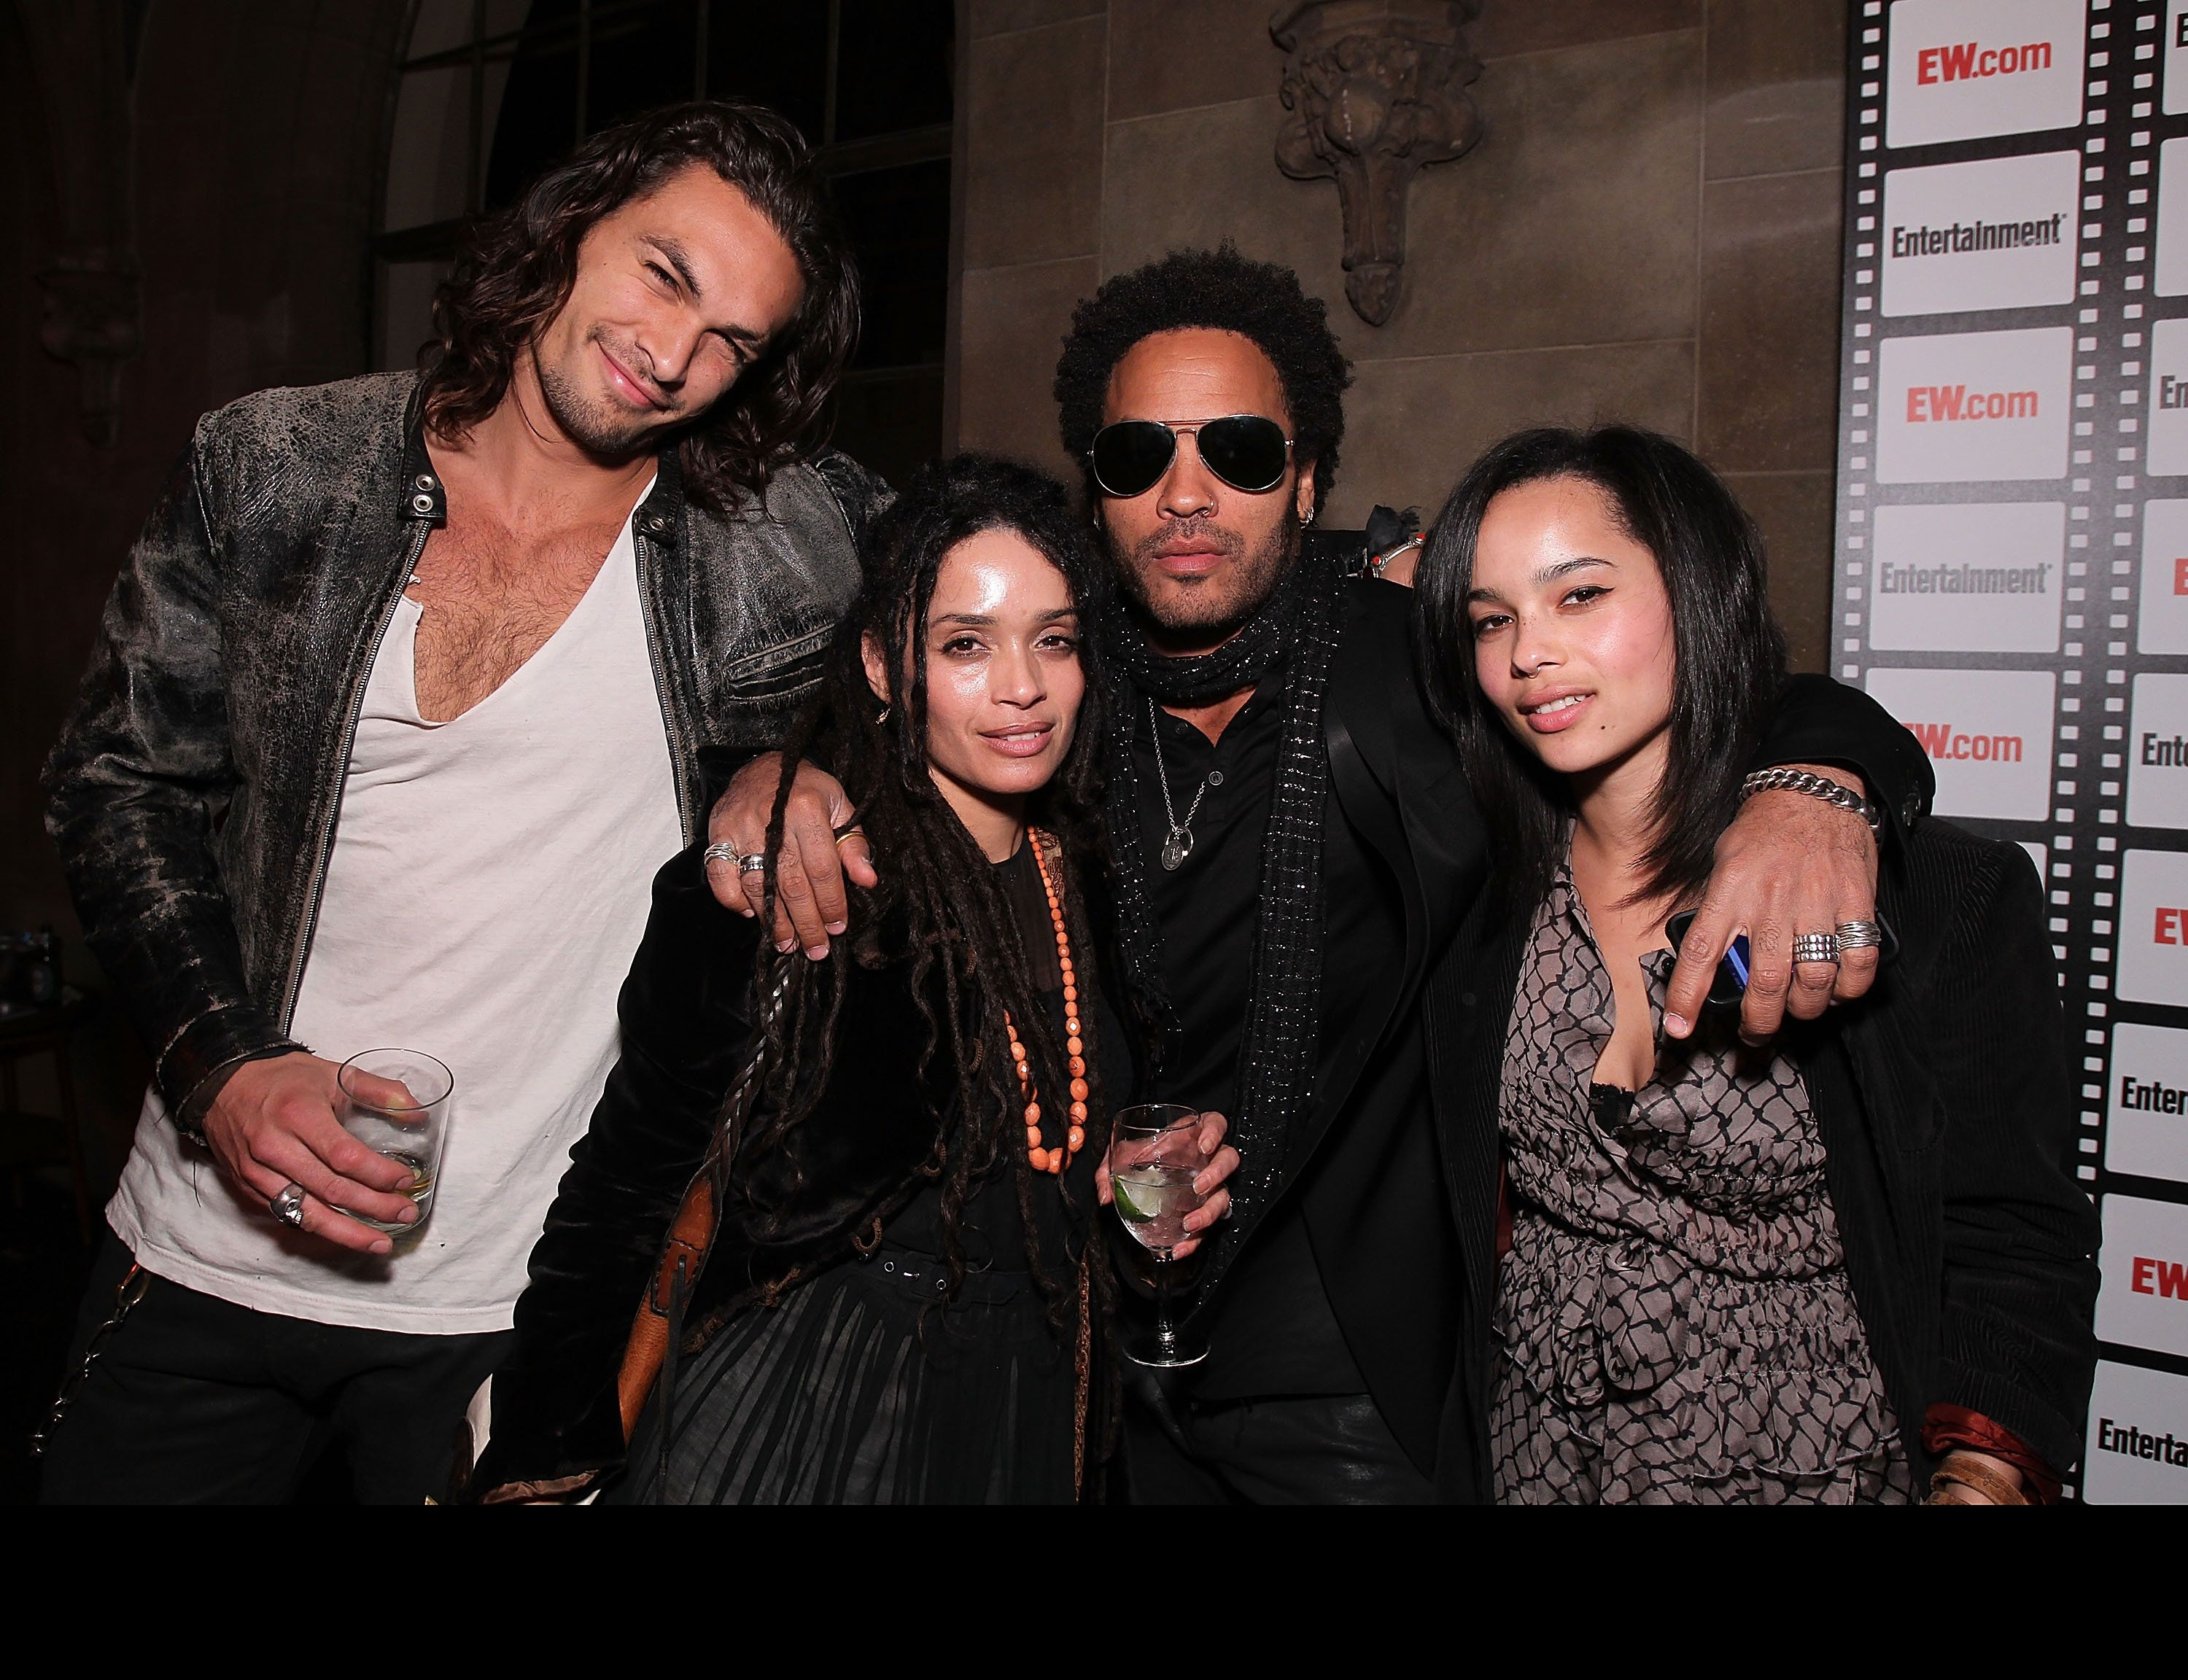 LOS ANGELES, CA - FEBRUARY 25:  Jason Momoa, Lisa Bonet, Lenny Kravitz and Zoe Kravitz  at Entertainment Weekly's Party to  Celebrate the Best Director Oscar Nominees held at Chateau Marmont on February 25, 2010 in Los Angeles, California.  (Photo by Alexandra Wyman/WireImage)